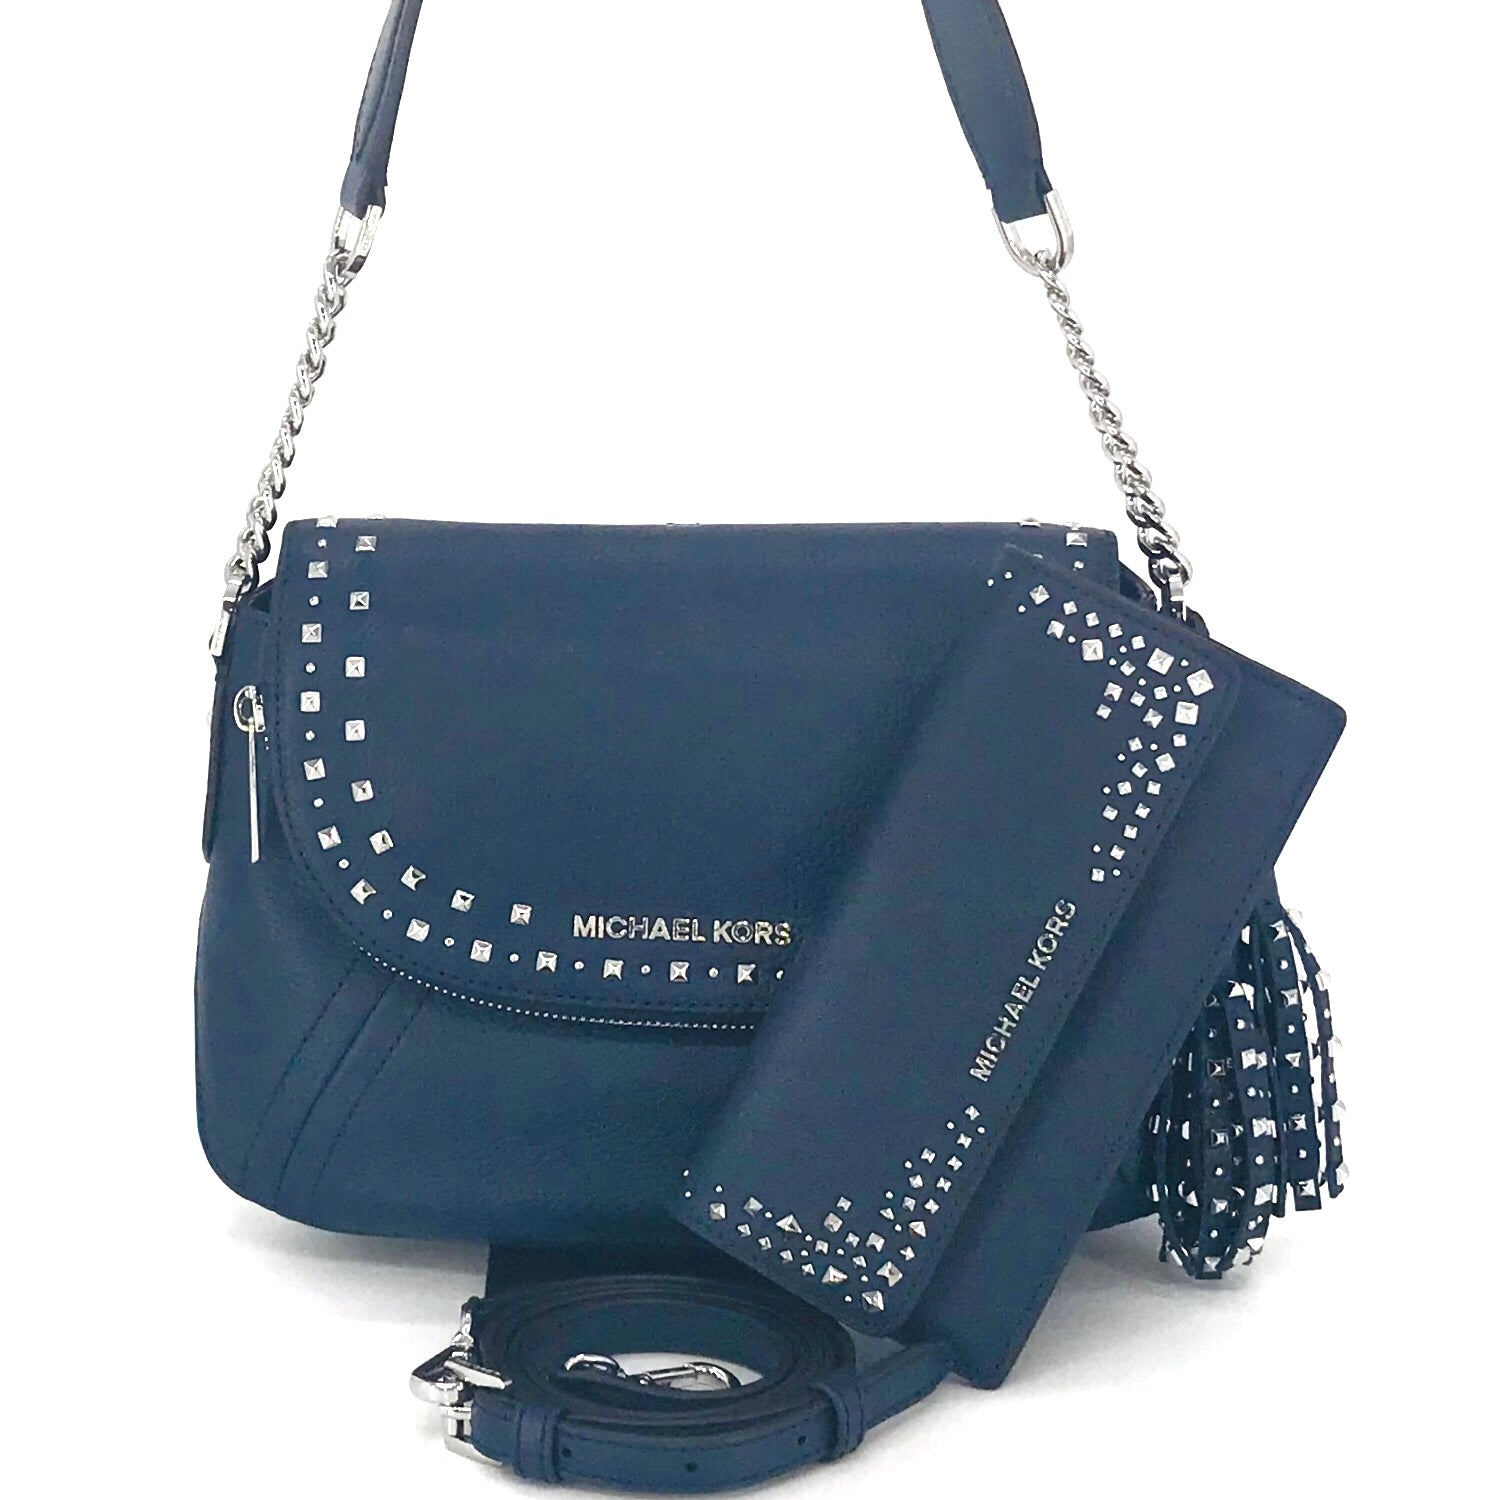 Michael Kors Studded Aria Shoulder bag and Wallet